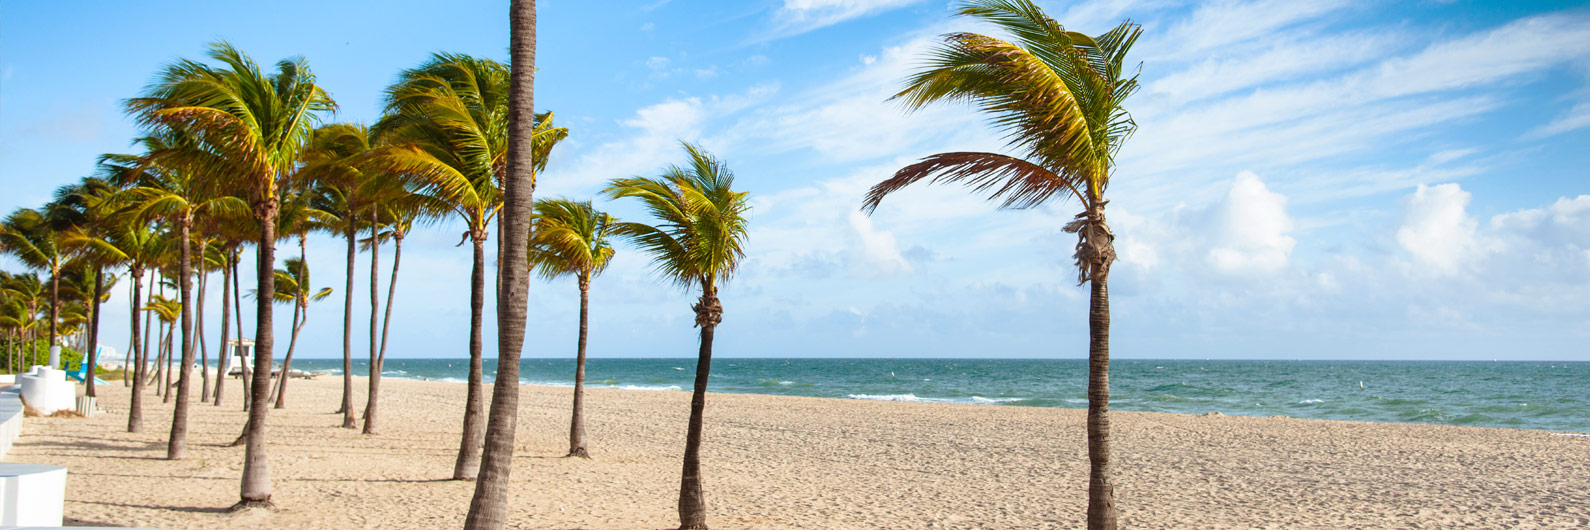 Book Flights To West Palm Beach Pbi